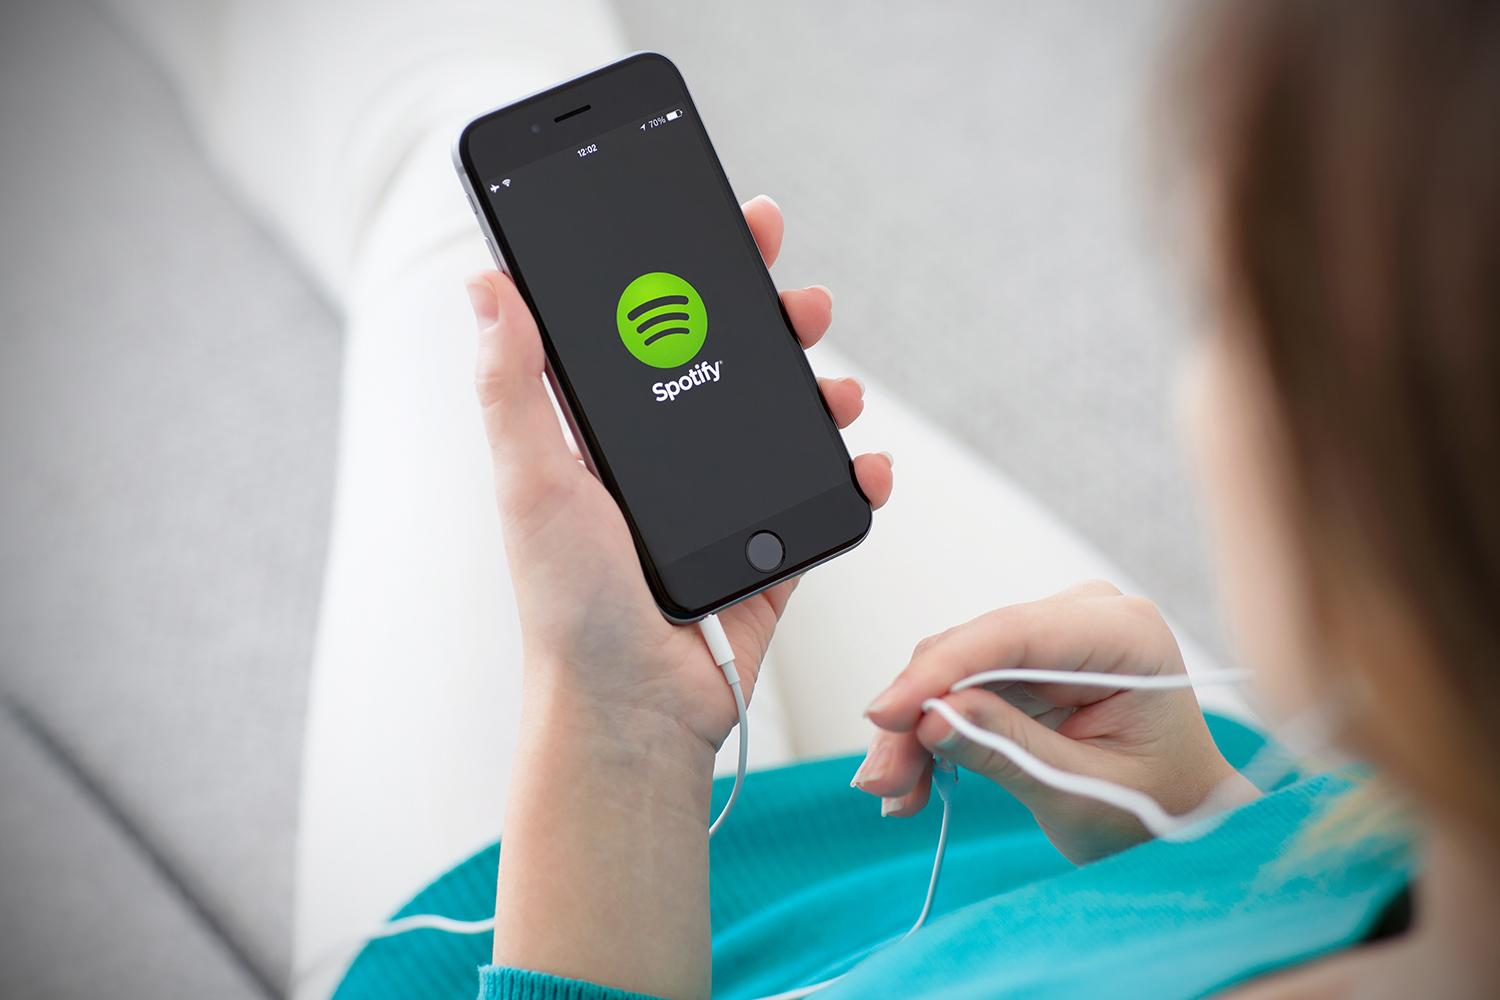 Spotify may make upcoming major releases exclusive to paid subscribers